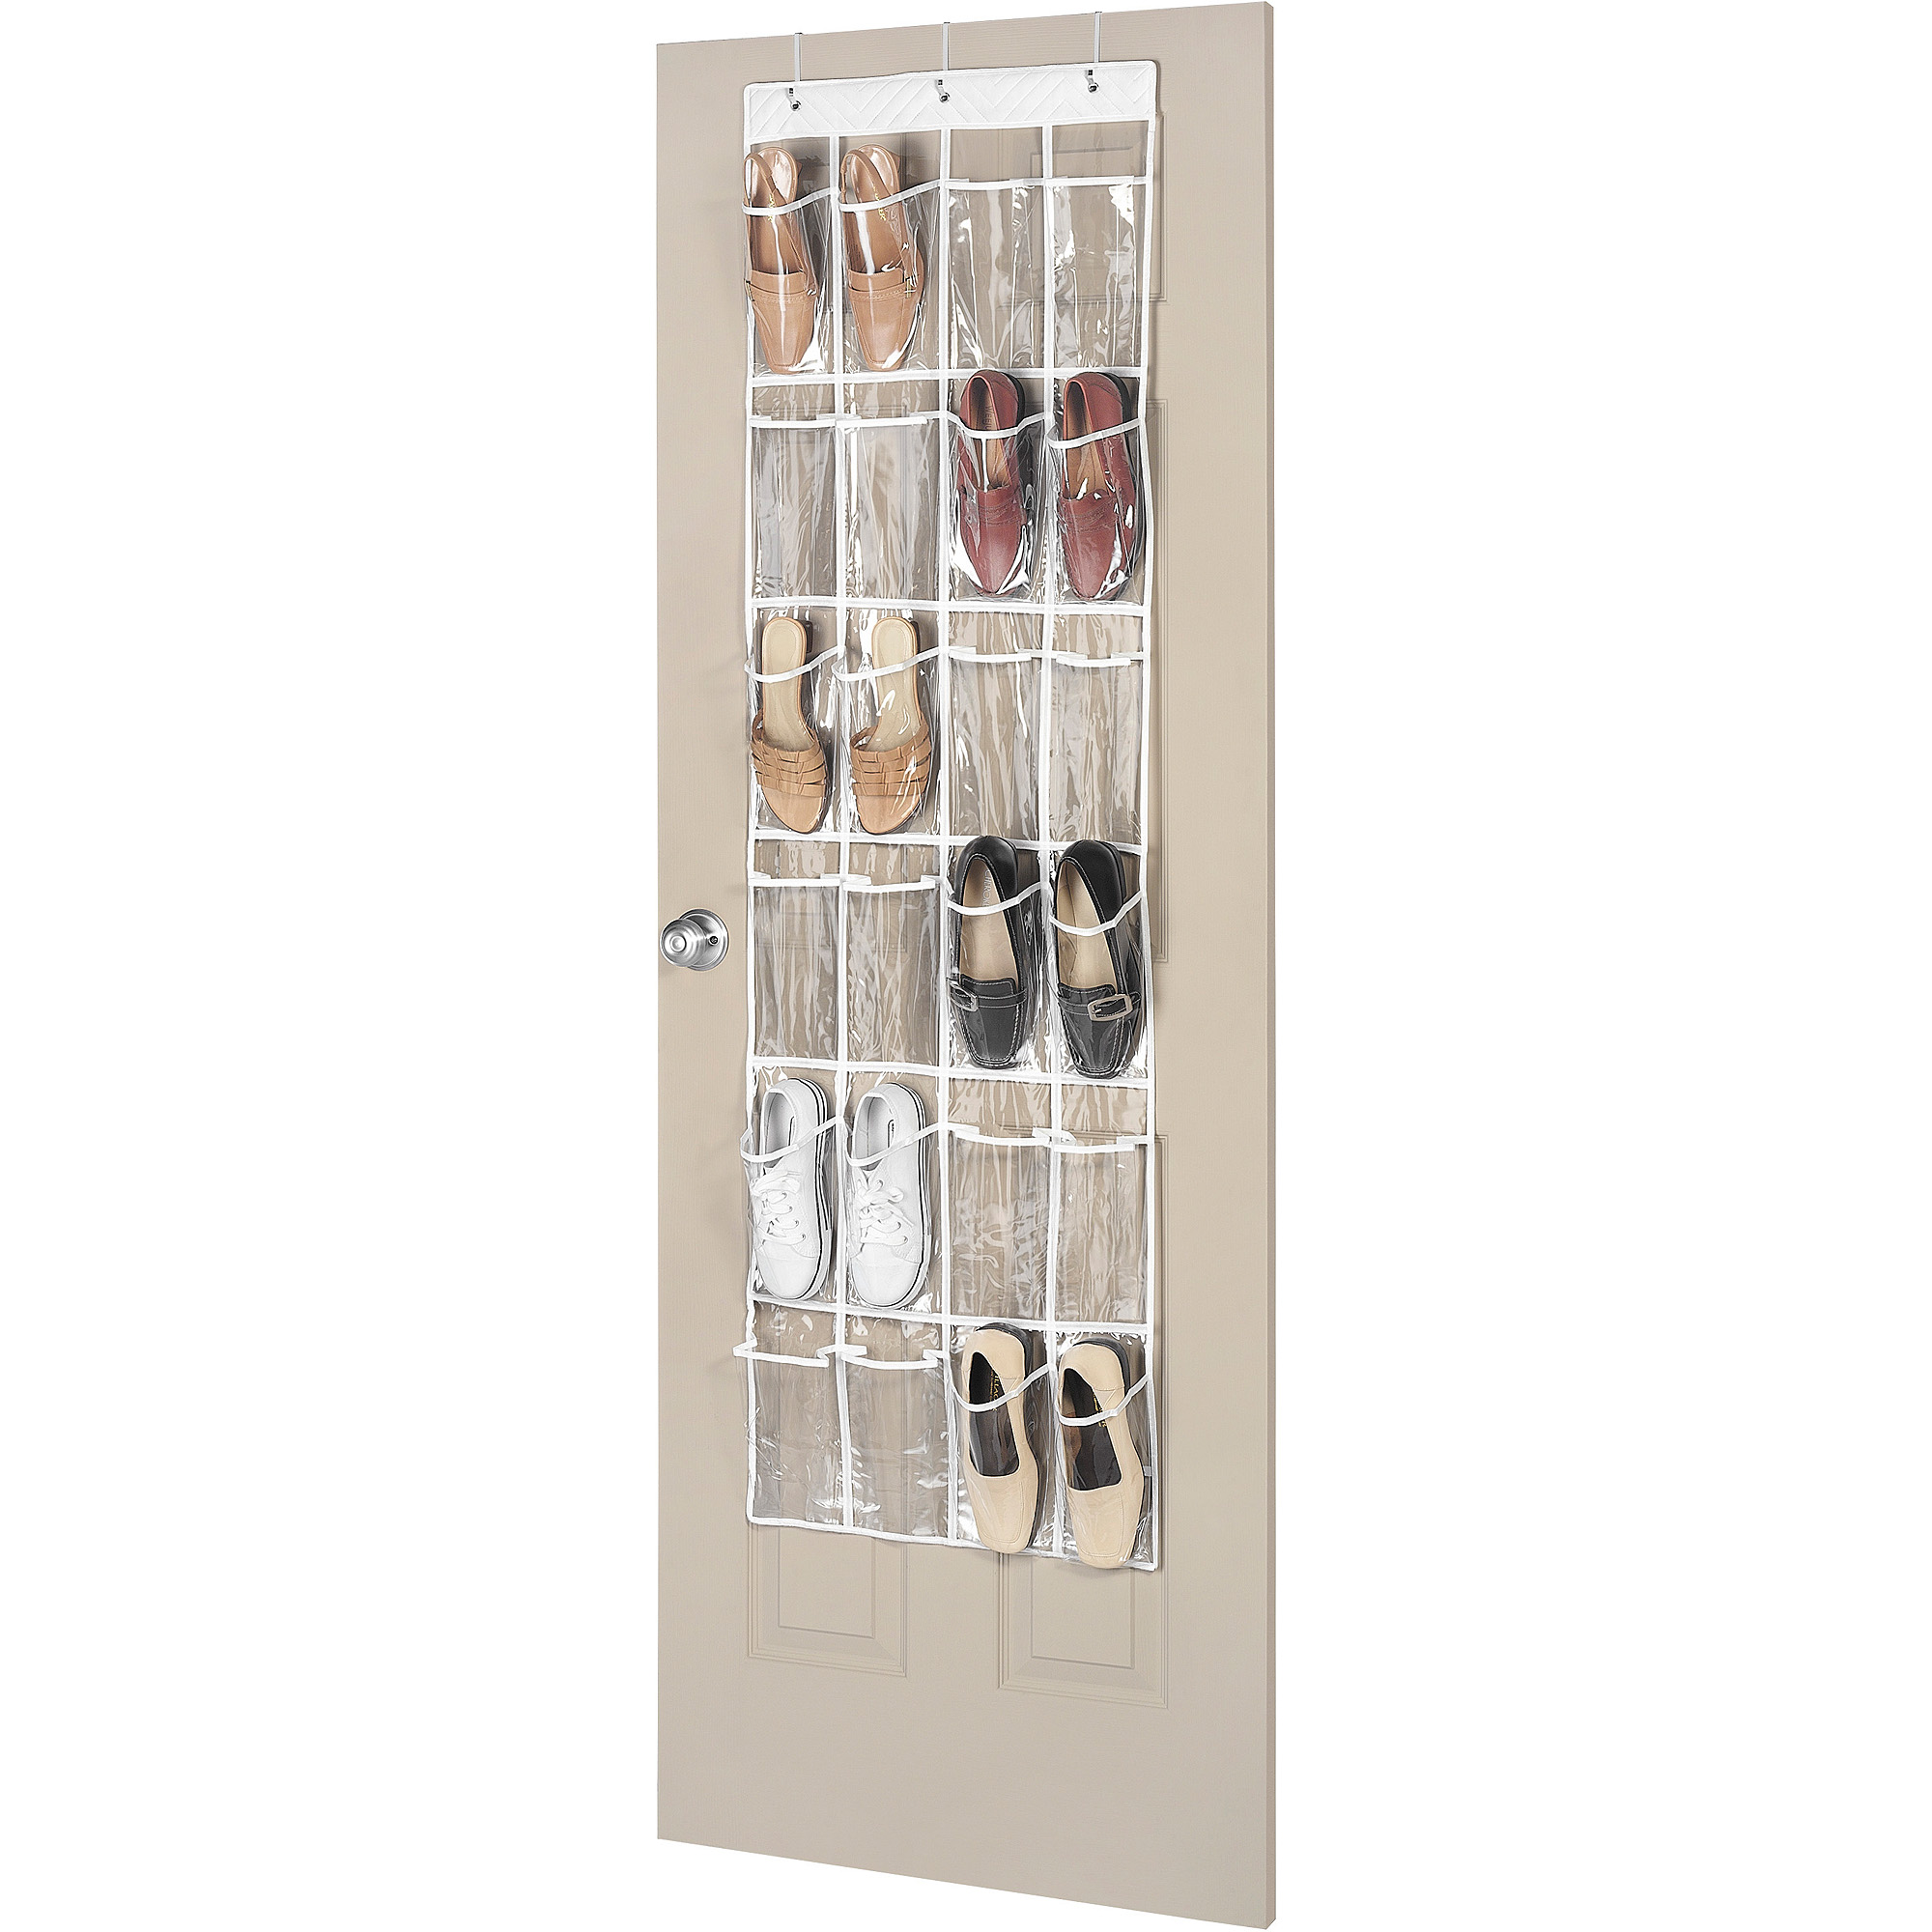 Product Image Whitmor 24 Pocket Over The Door Shoe Organizer   Clear